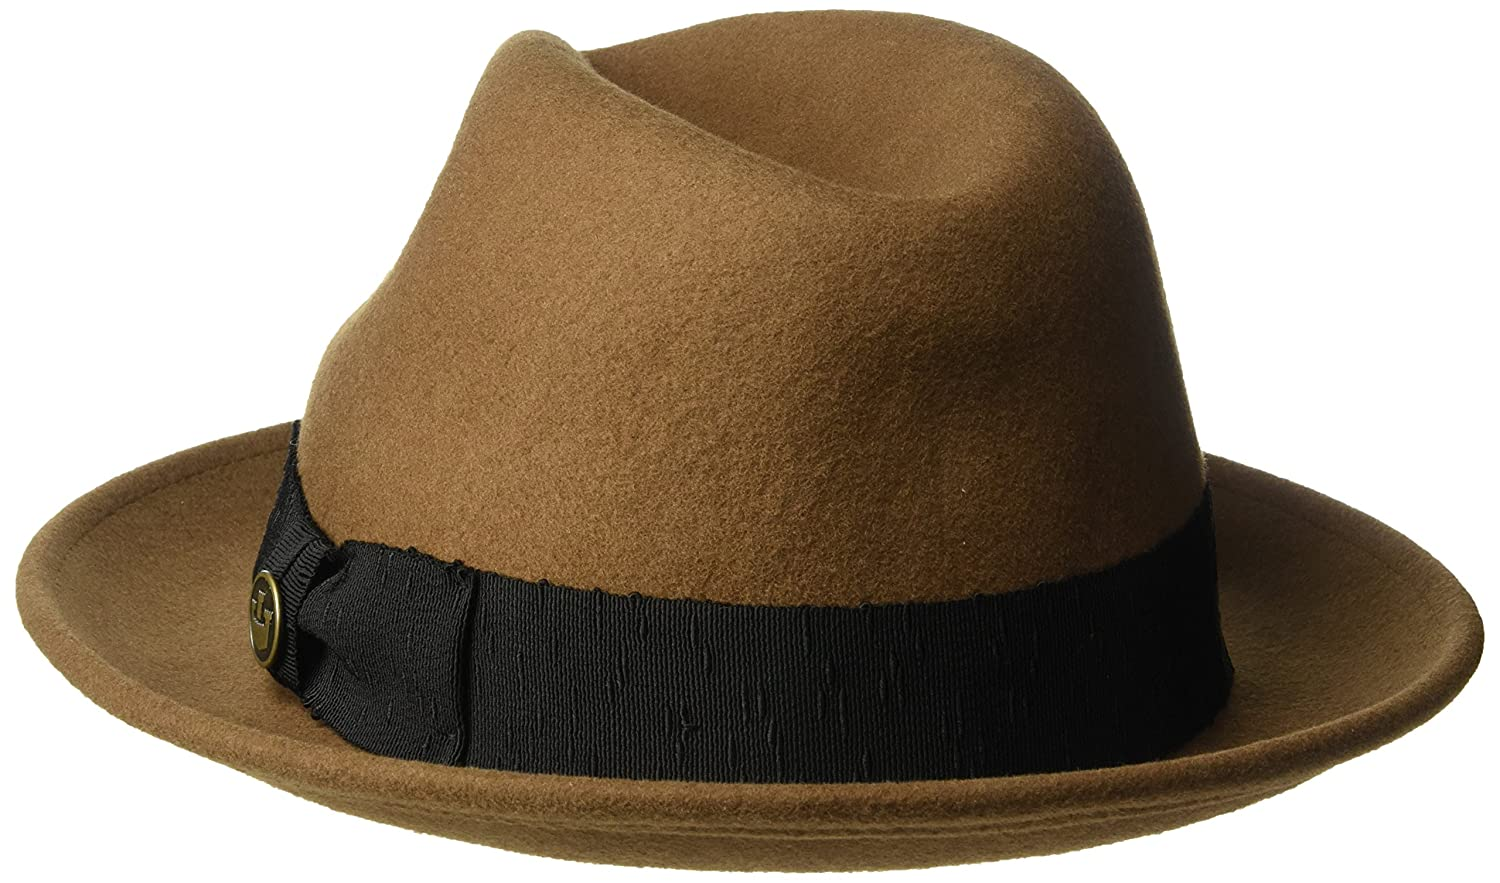 73bdeeafbddf0 Goorin Bros. Men s Mr. Driver Wool Fedora Hat at Amazon Men s Clothing  store